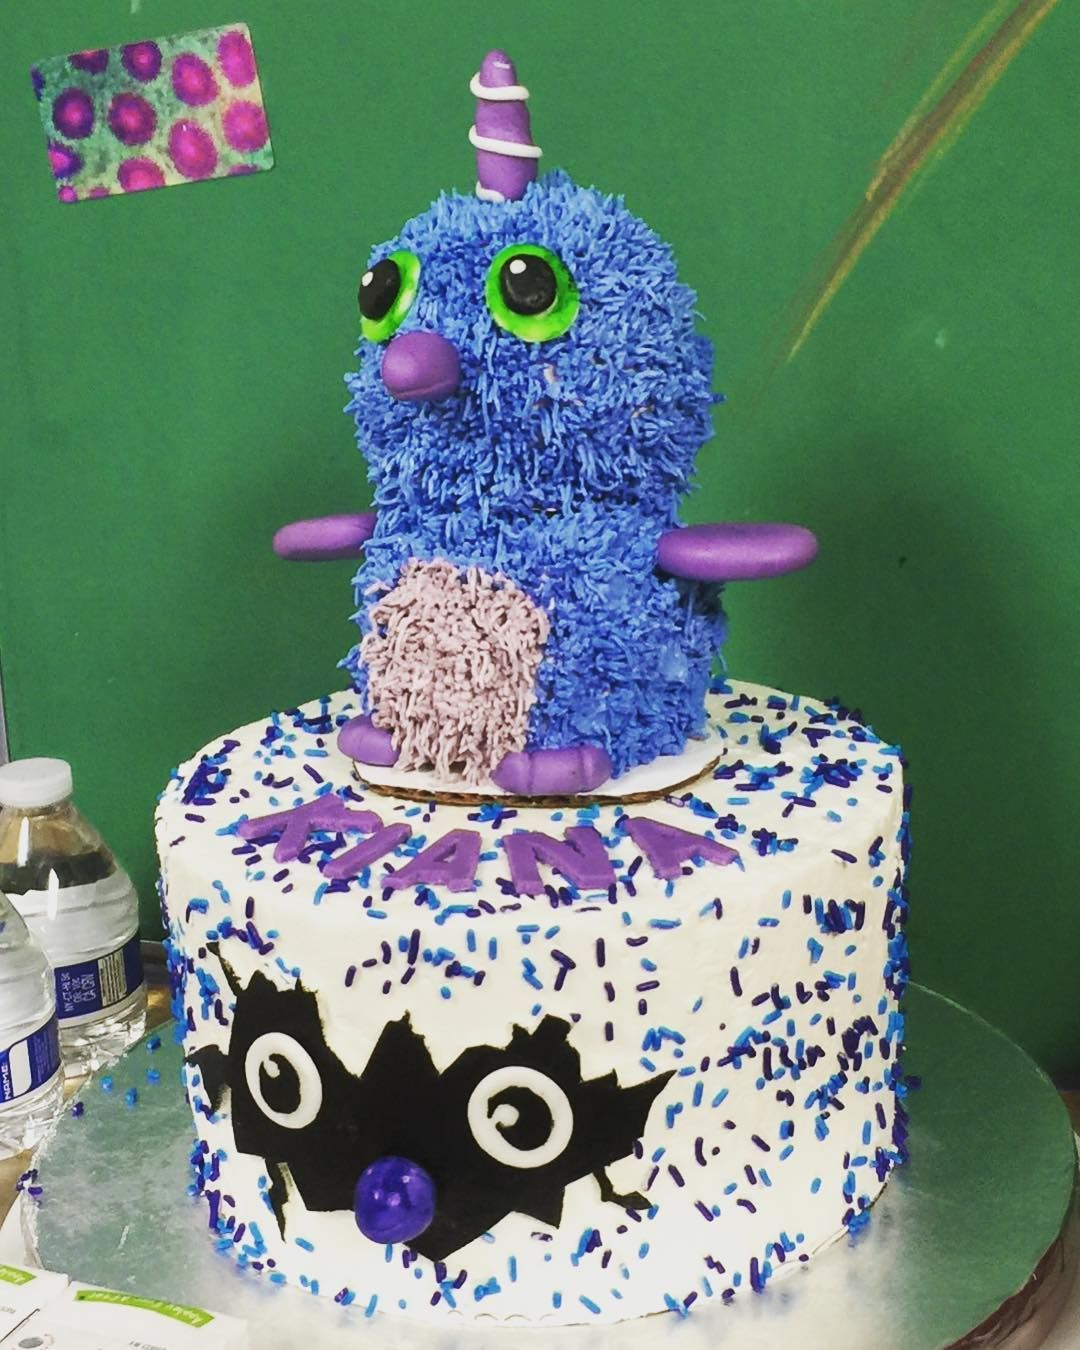 This Hatchimals Birthday Cake Was Crafted And Baked By A Friend For Her Daughters Party Today Not Only Gorgeous Also Delicious